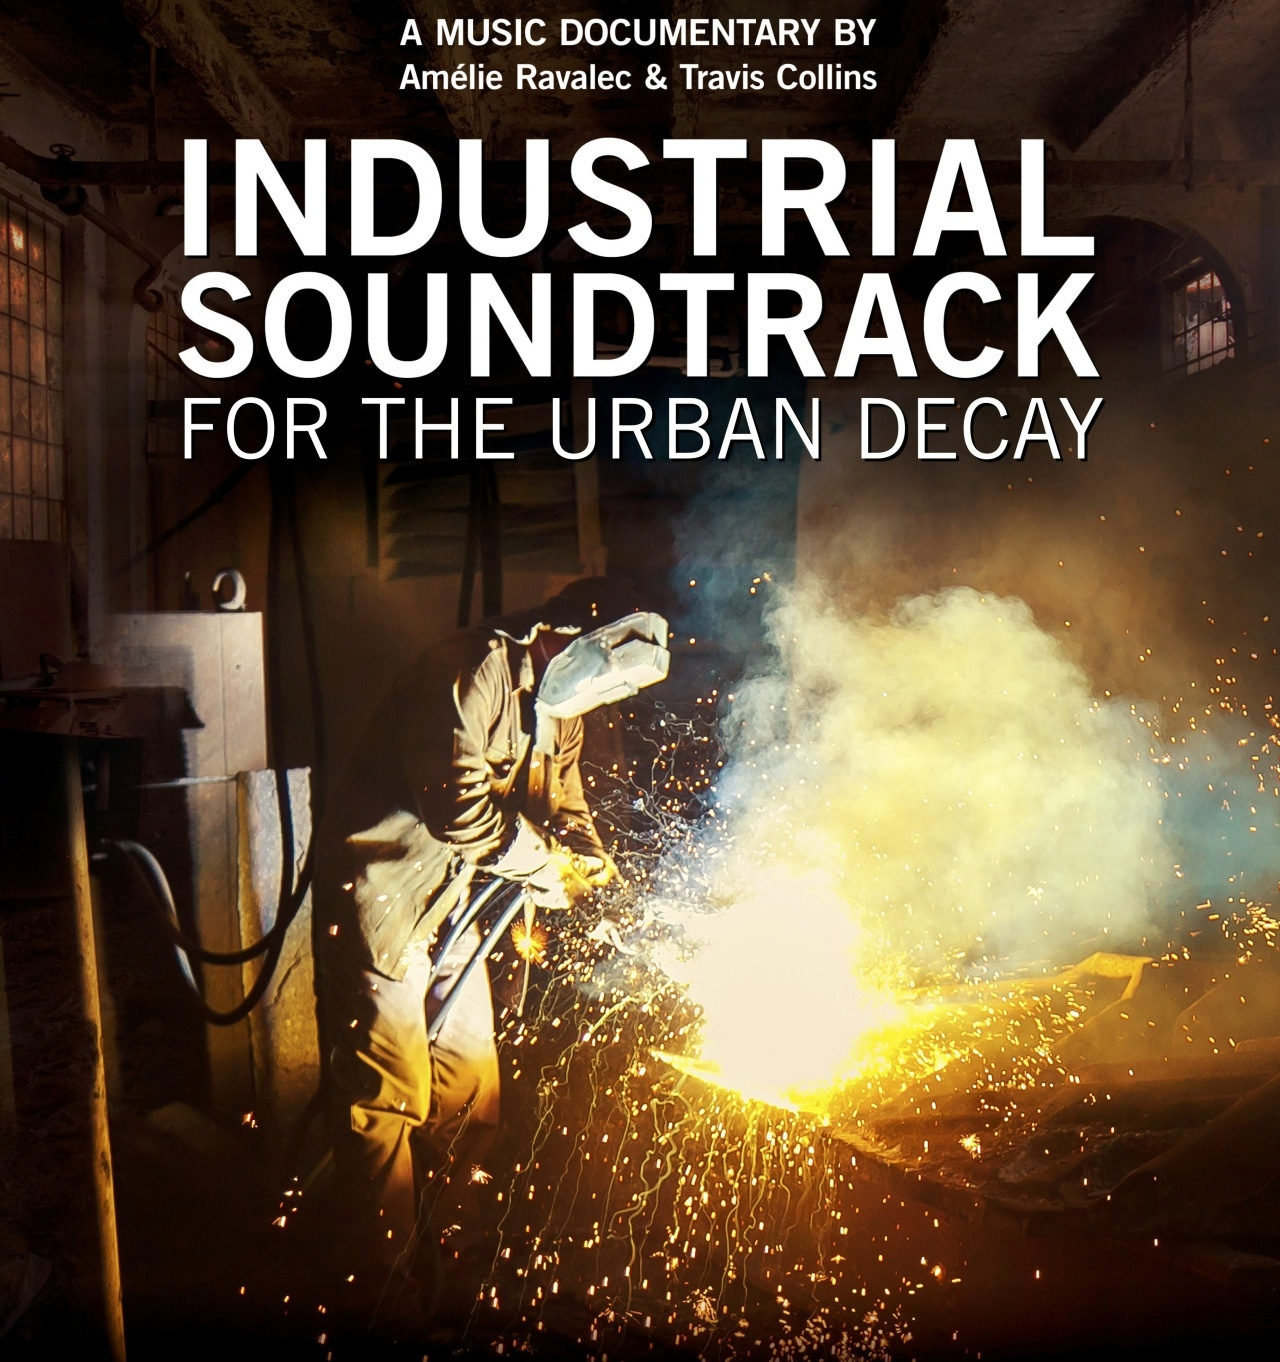 Industrial Soundtrack For The Urban Decay - new documentary film